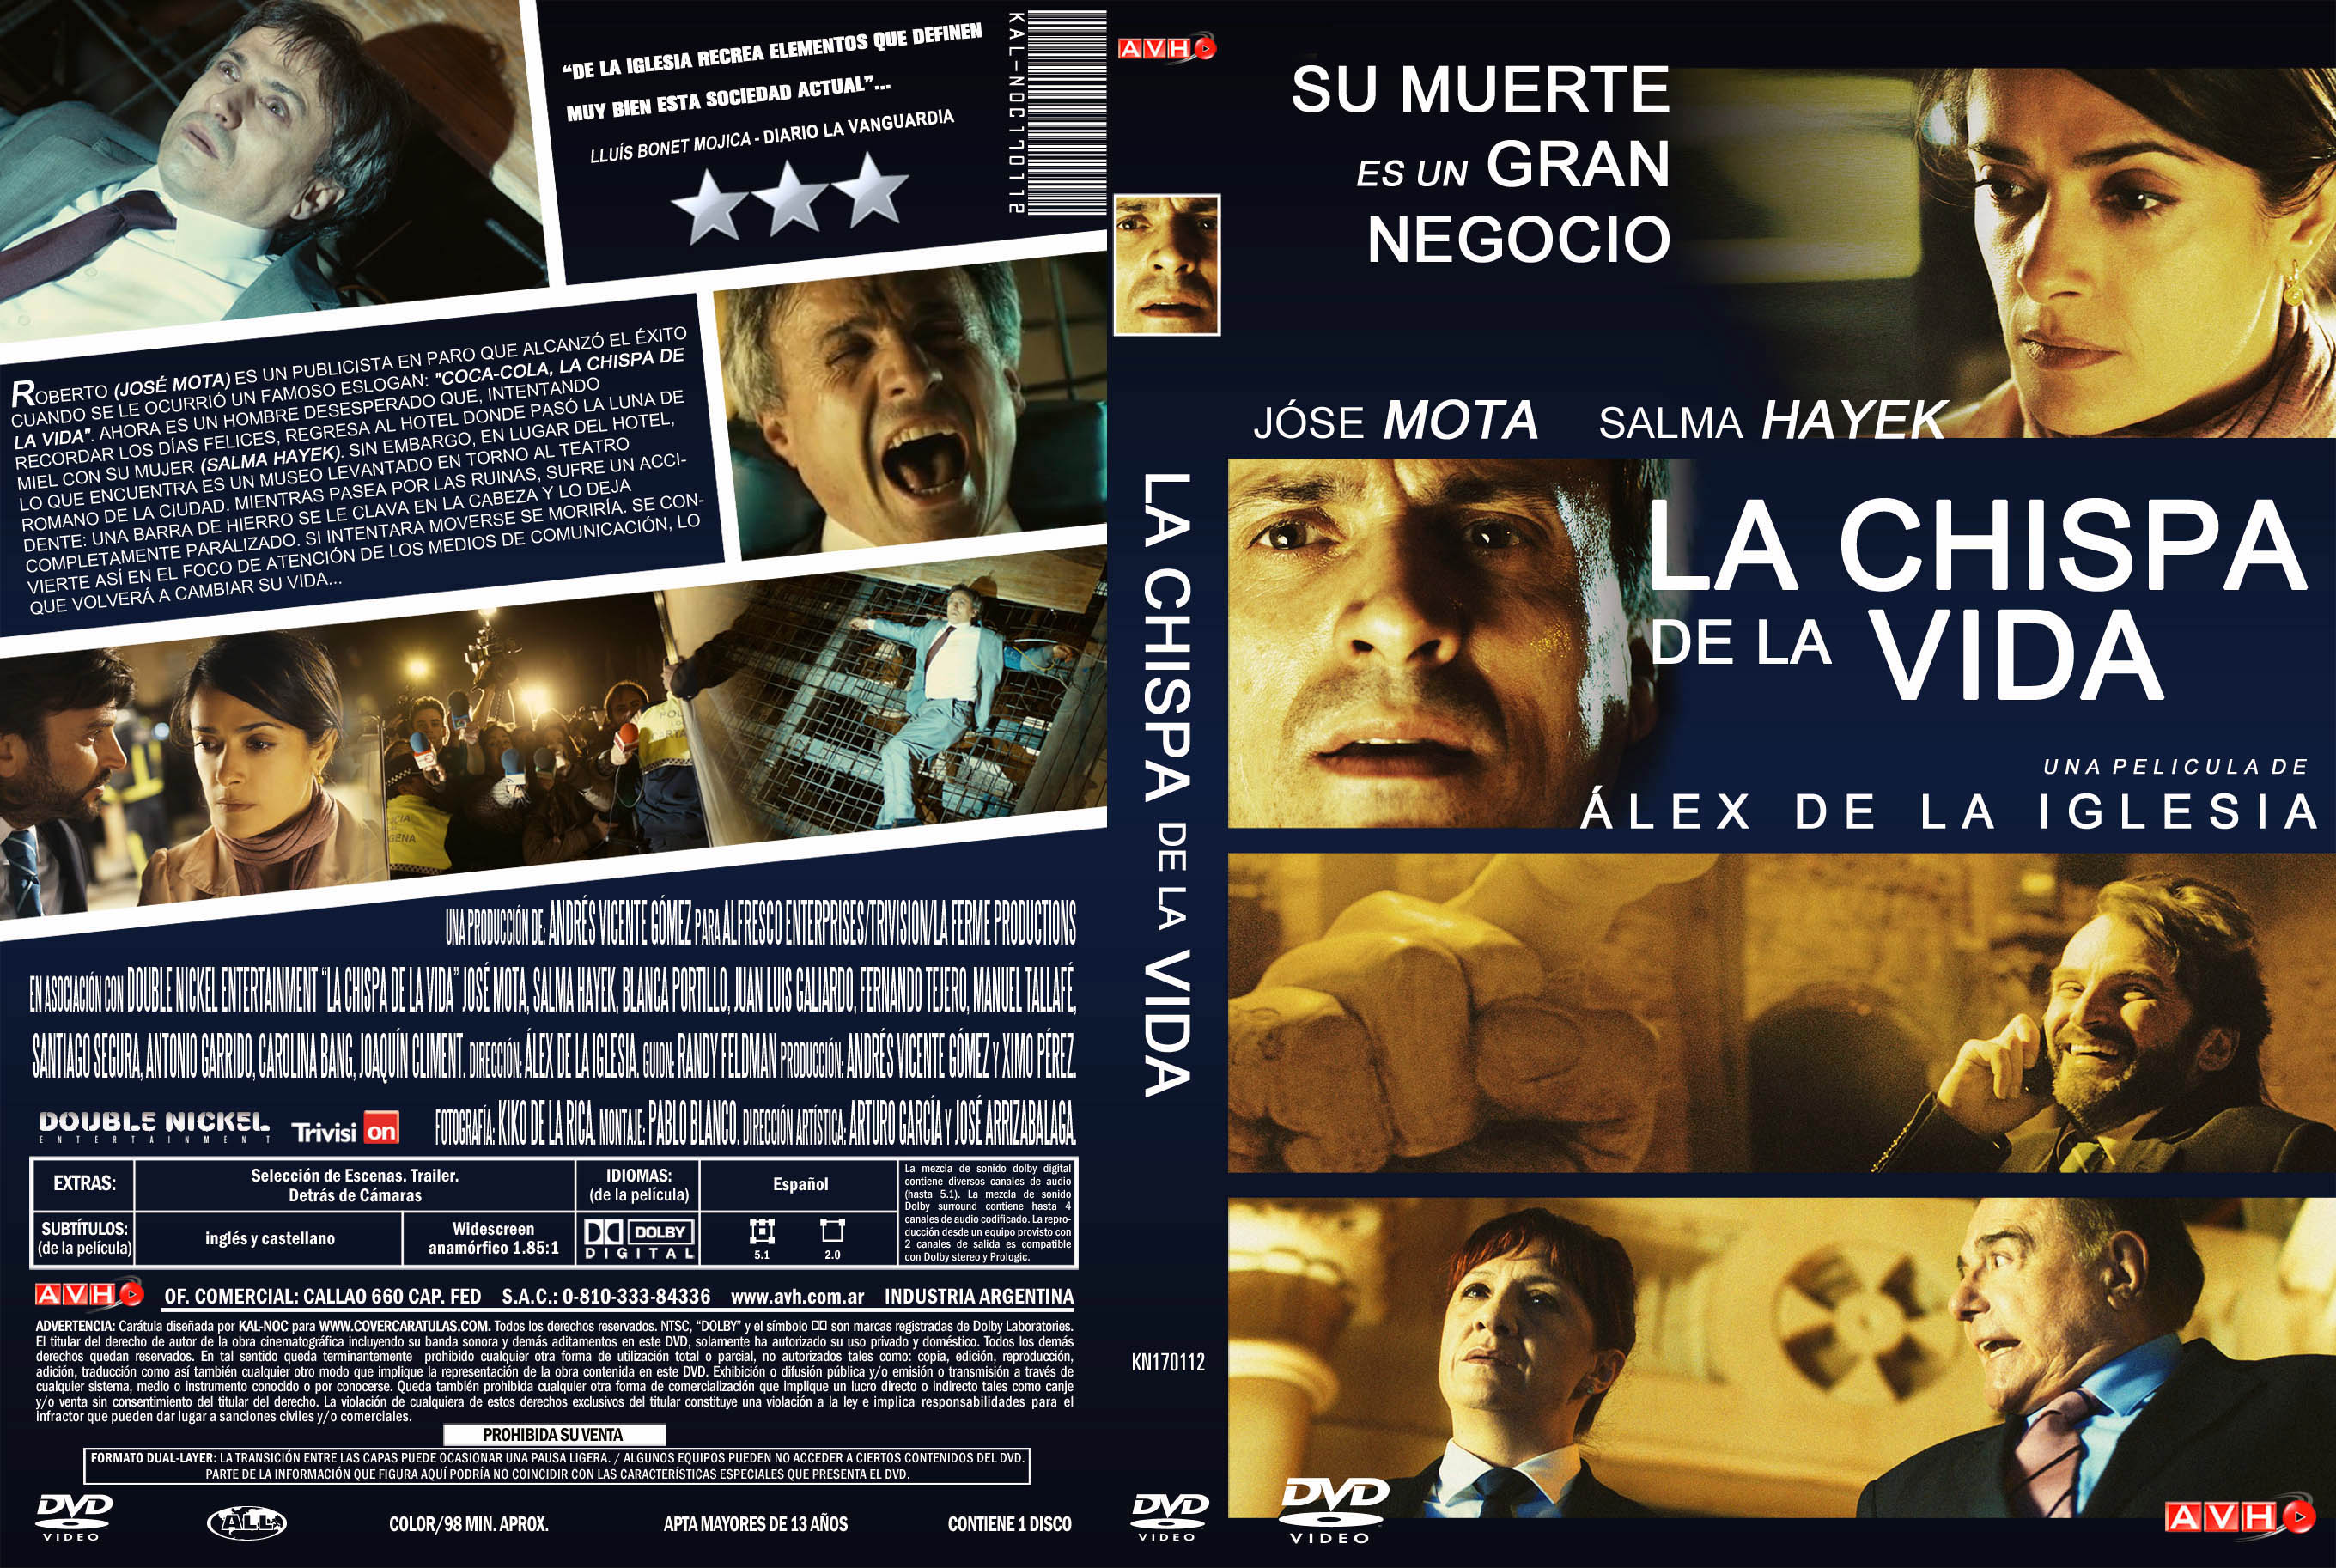 La chispa de la vida – Movie Review